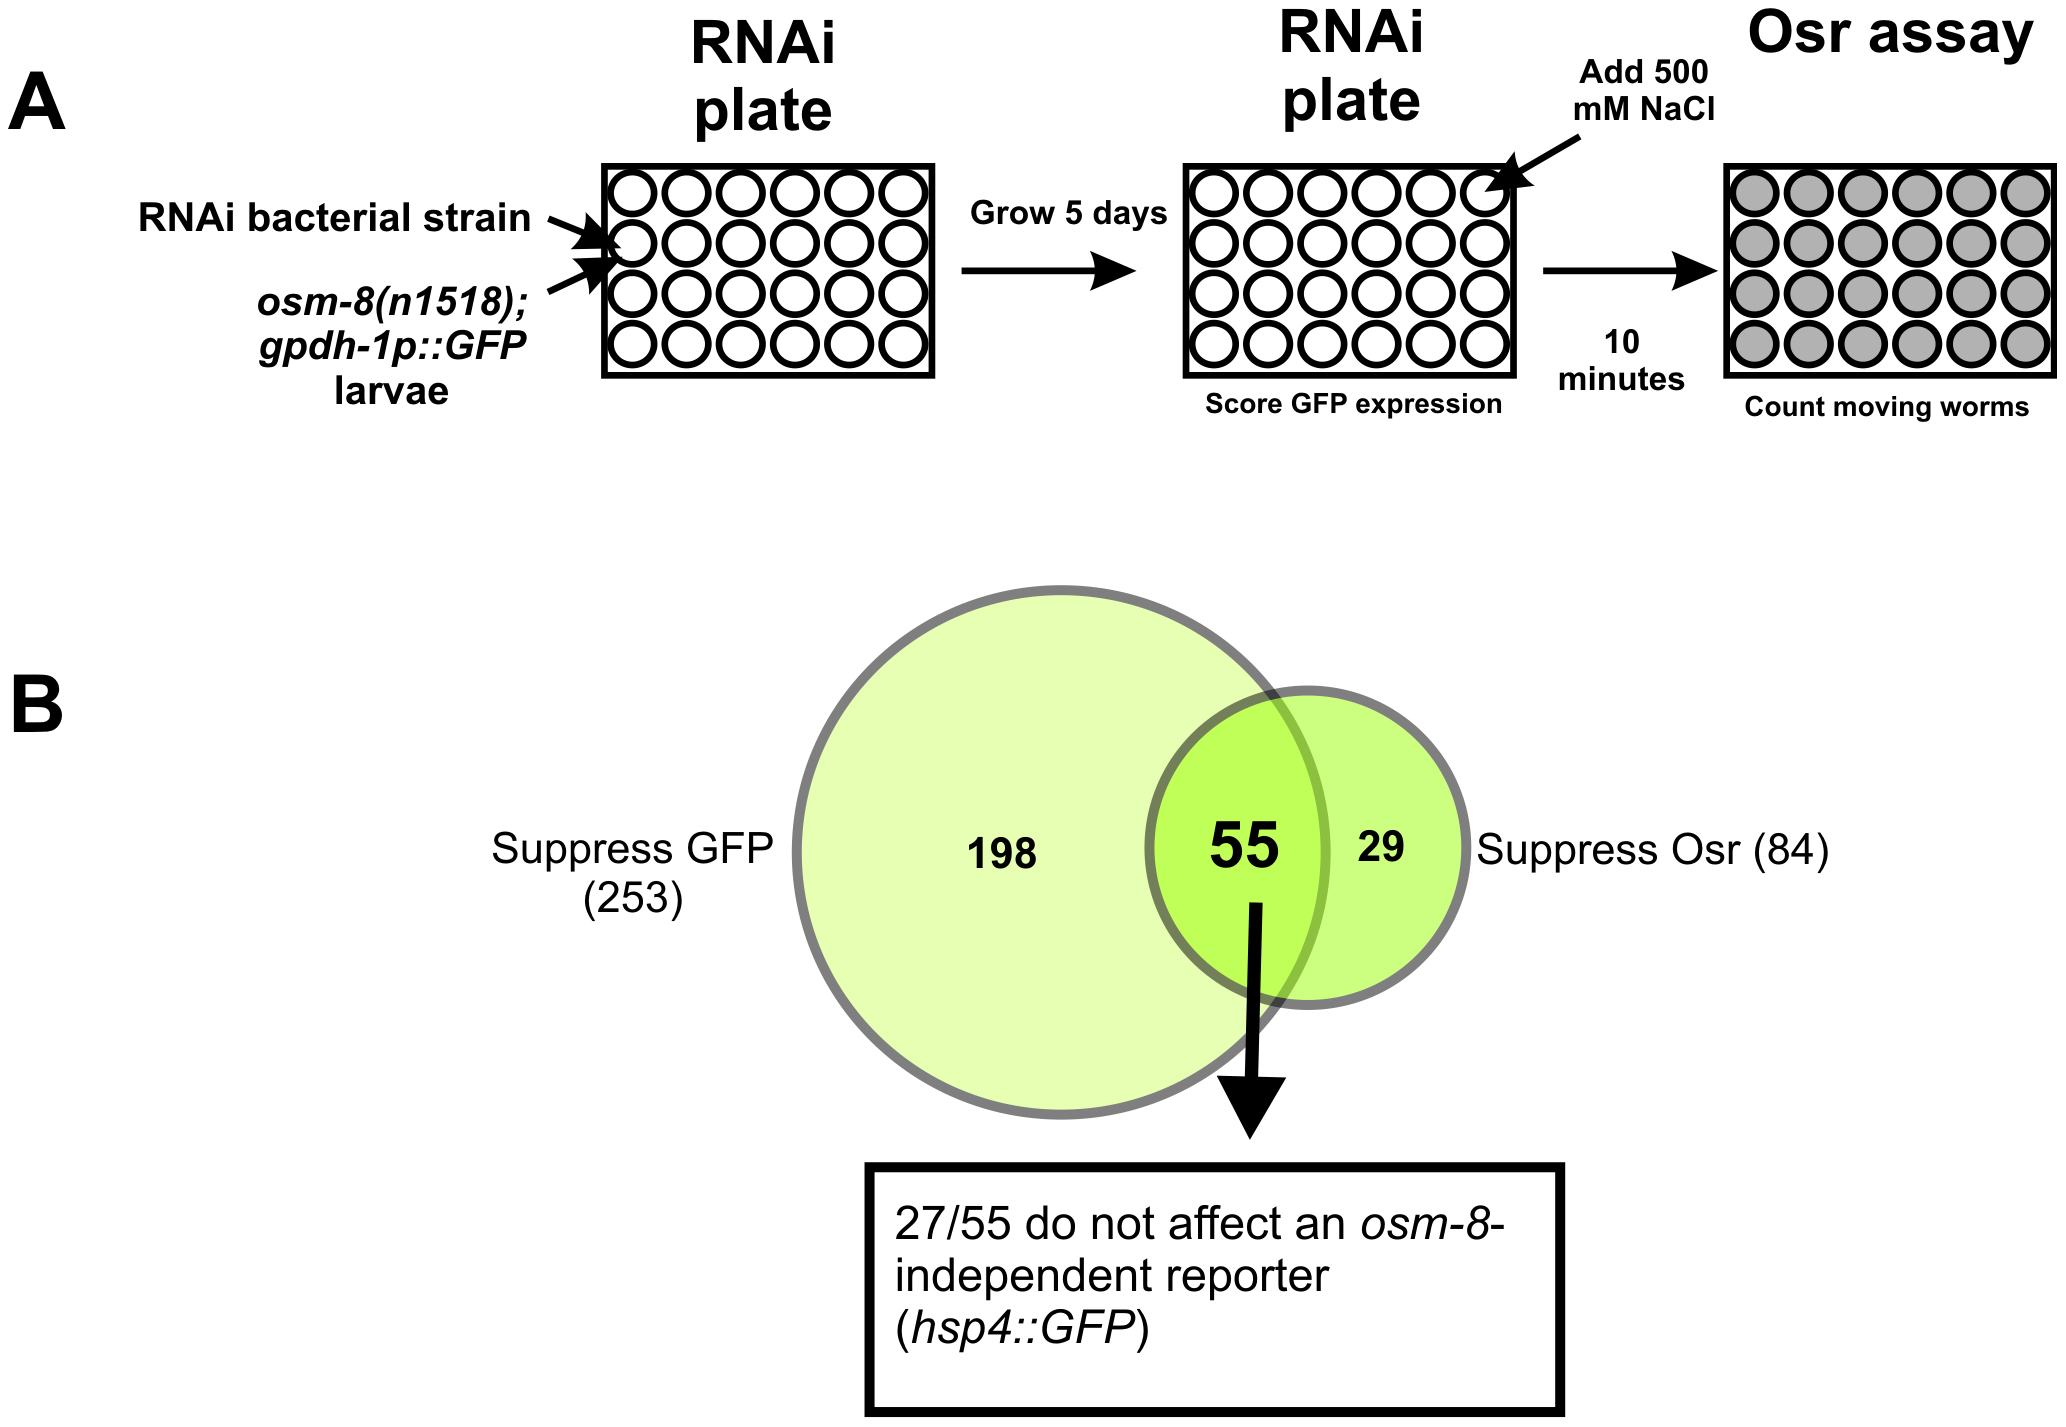 A genome-wide RNAi screen identifies suppressors of <i>osm-8</i> phenotypes.